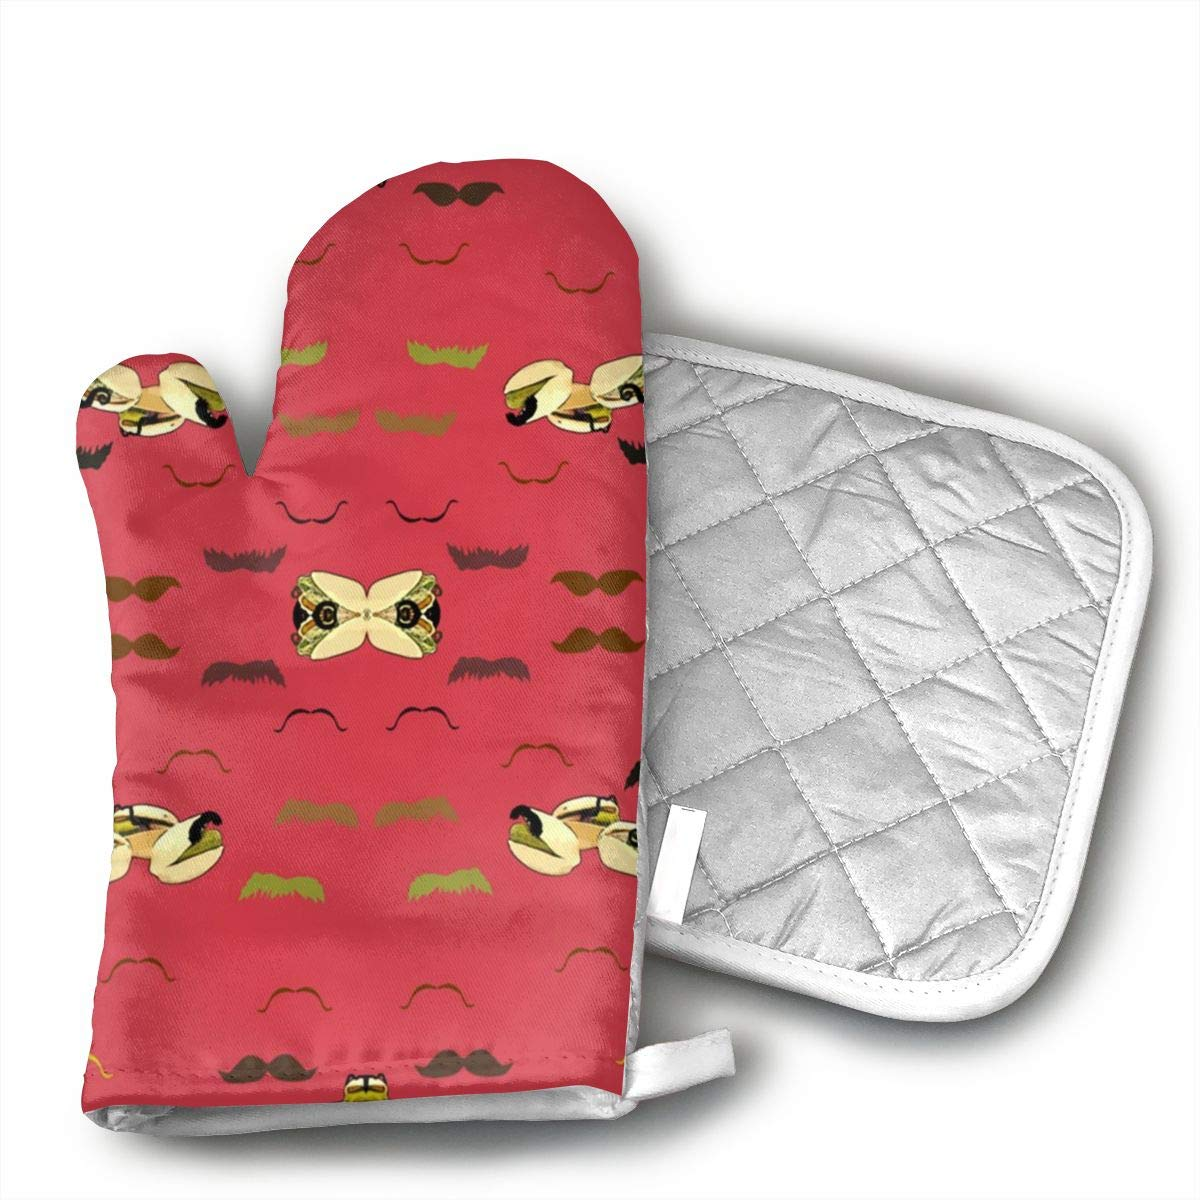 Klasl5 Pistachios with Mustachios Oven Mitts,Heat Resistant Oven Gloves,Non-Slip Cooking Gloves,Washable Kitchen Mitts for Baking, Barbecue.